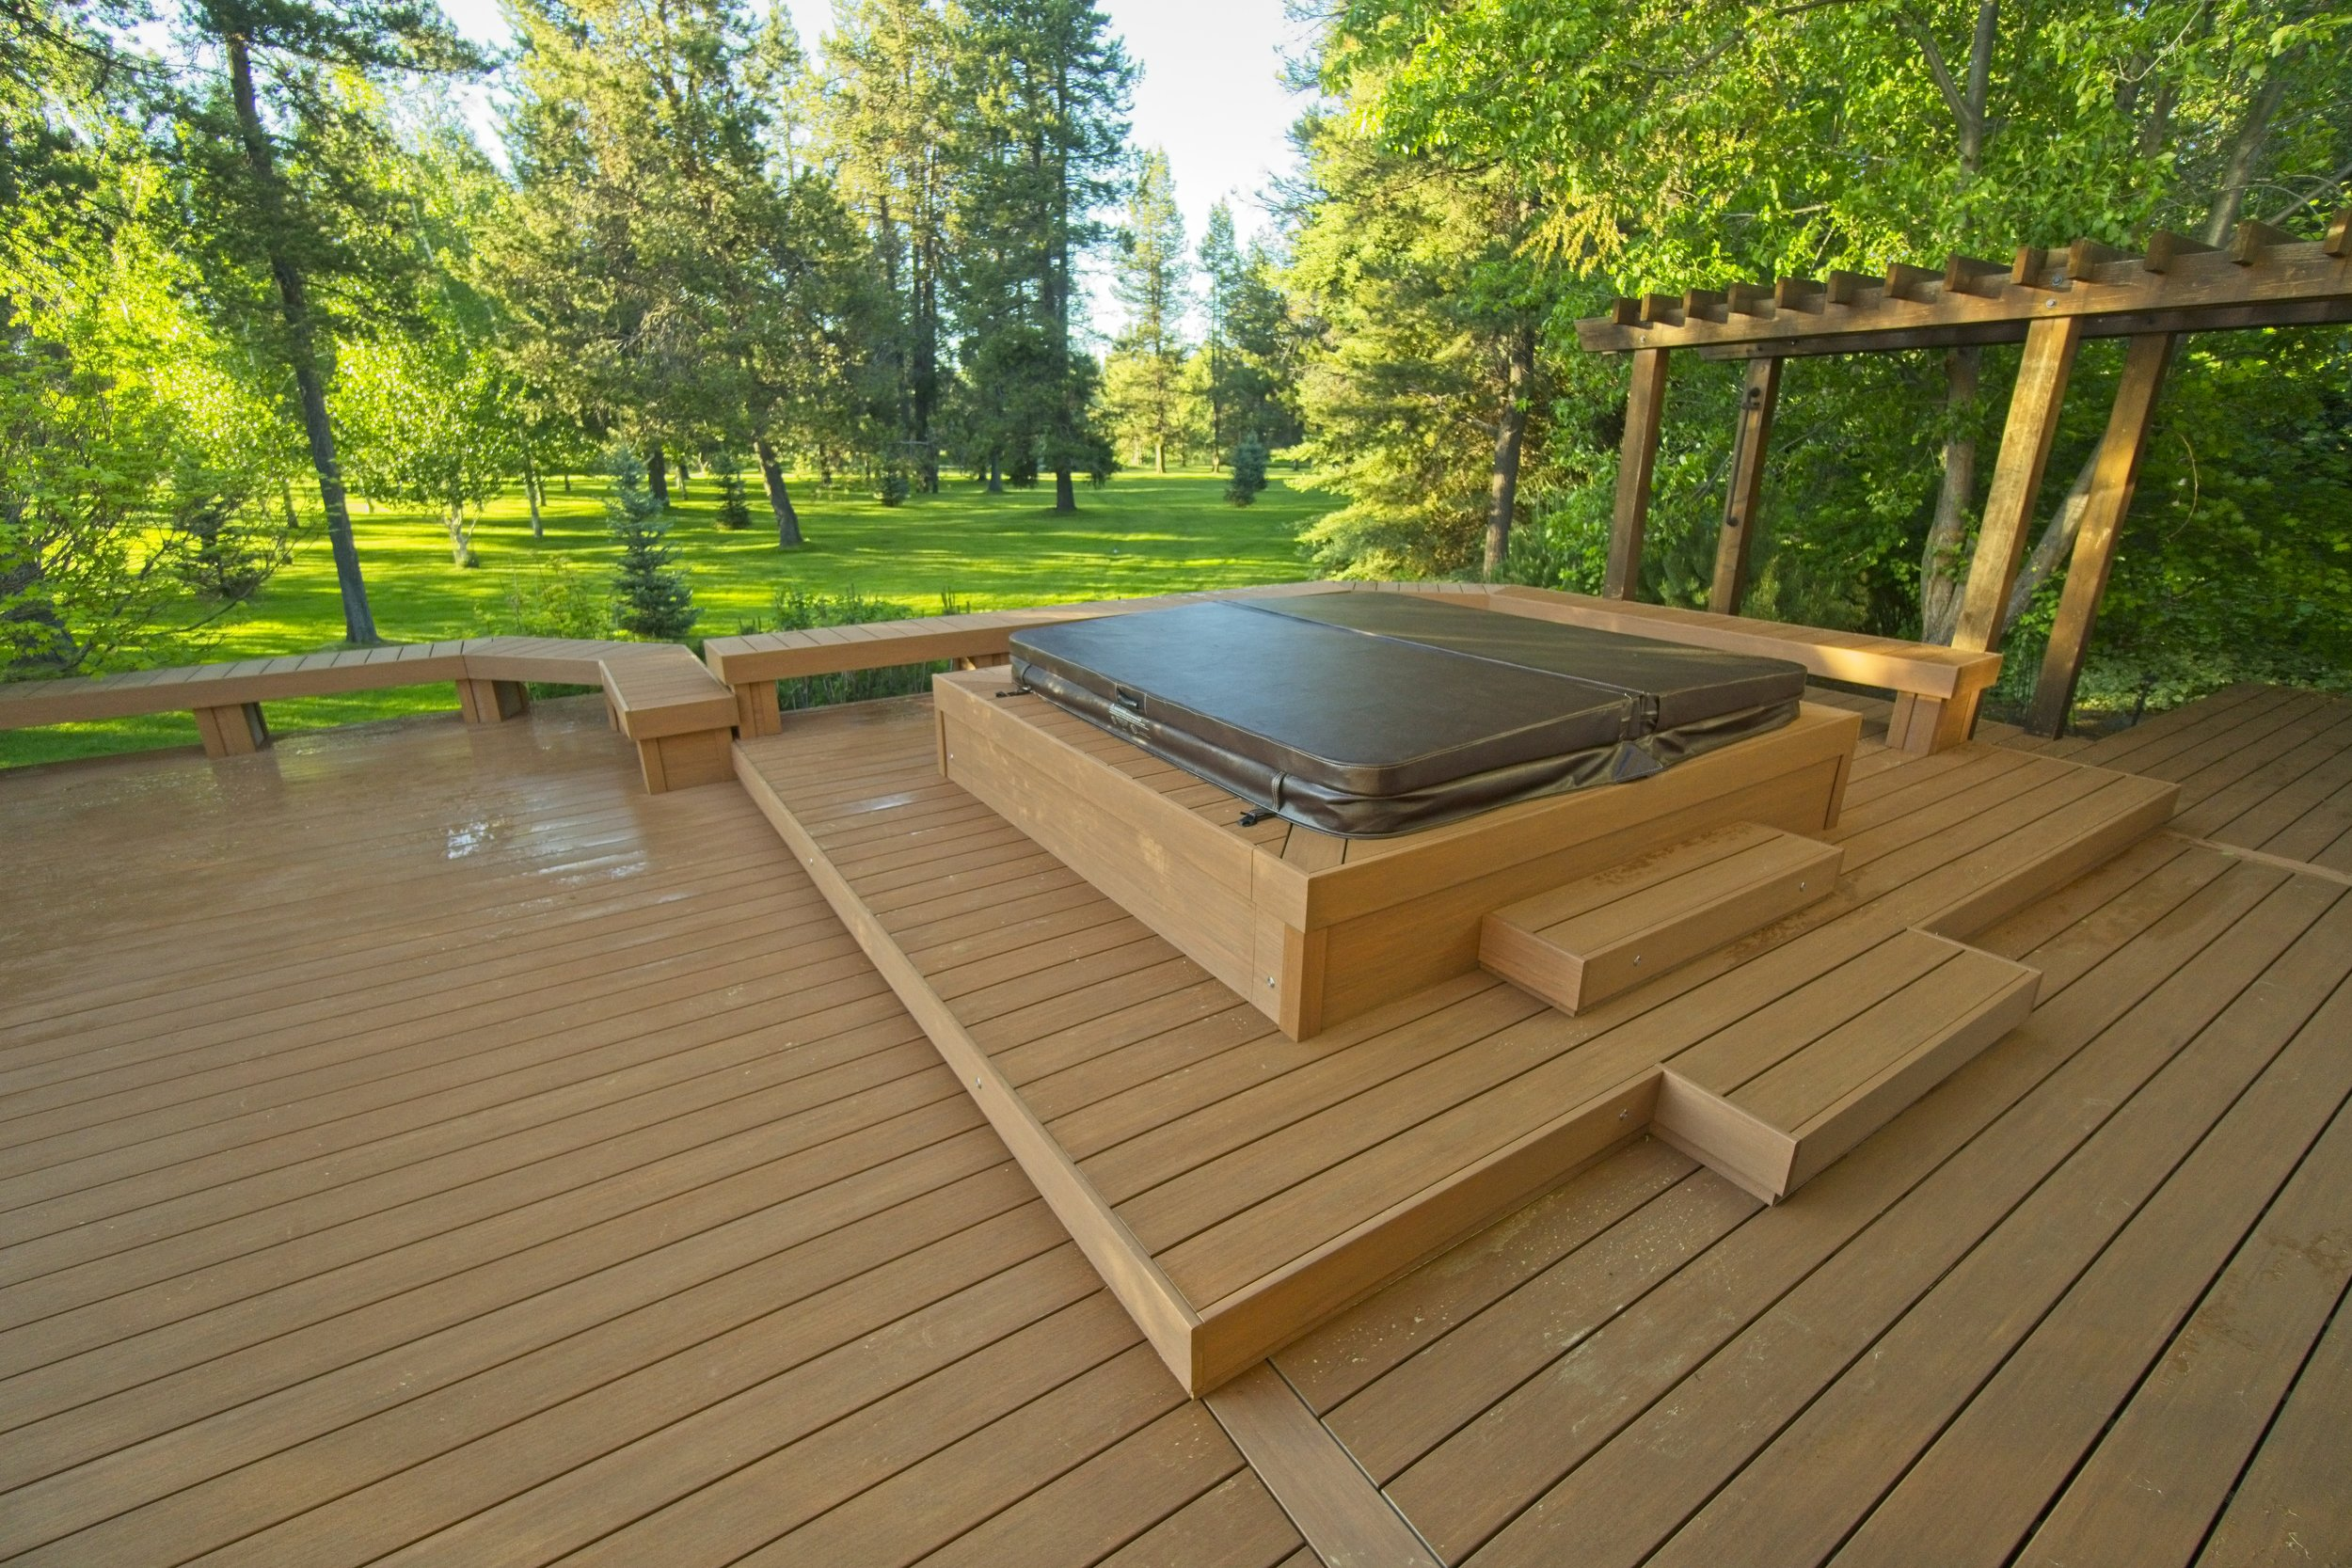 Fascia - Identified as the horizontal boards that are installed on the outside edges of your deck, its benches, and other vertical deck surfaces, the fascia will usually be installed using the same material as the deck's surface or using the same material as was used for the house's trim. When the fascia material matches that of the house trim, the deck tends to appear more 'built in'; like it was part of the original architecture. When the fascia matches the decking, the lack of future maintenance is celebrated.